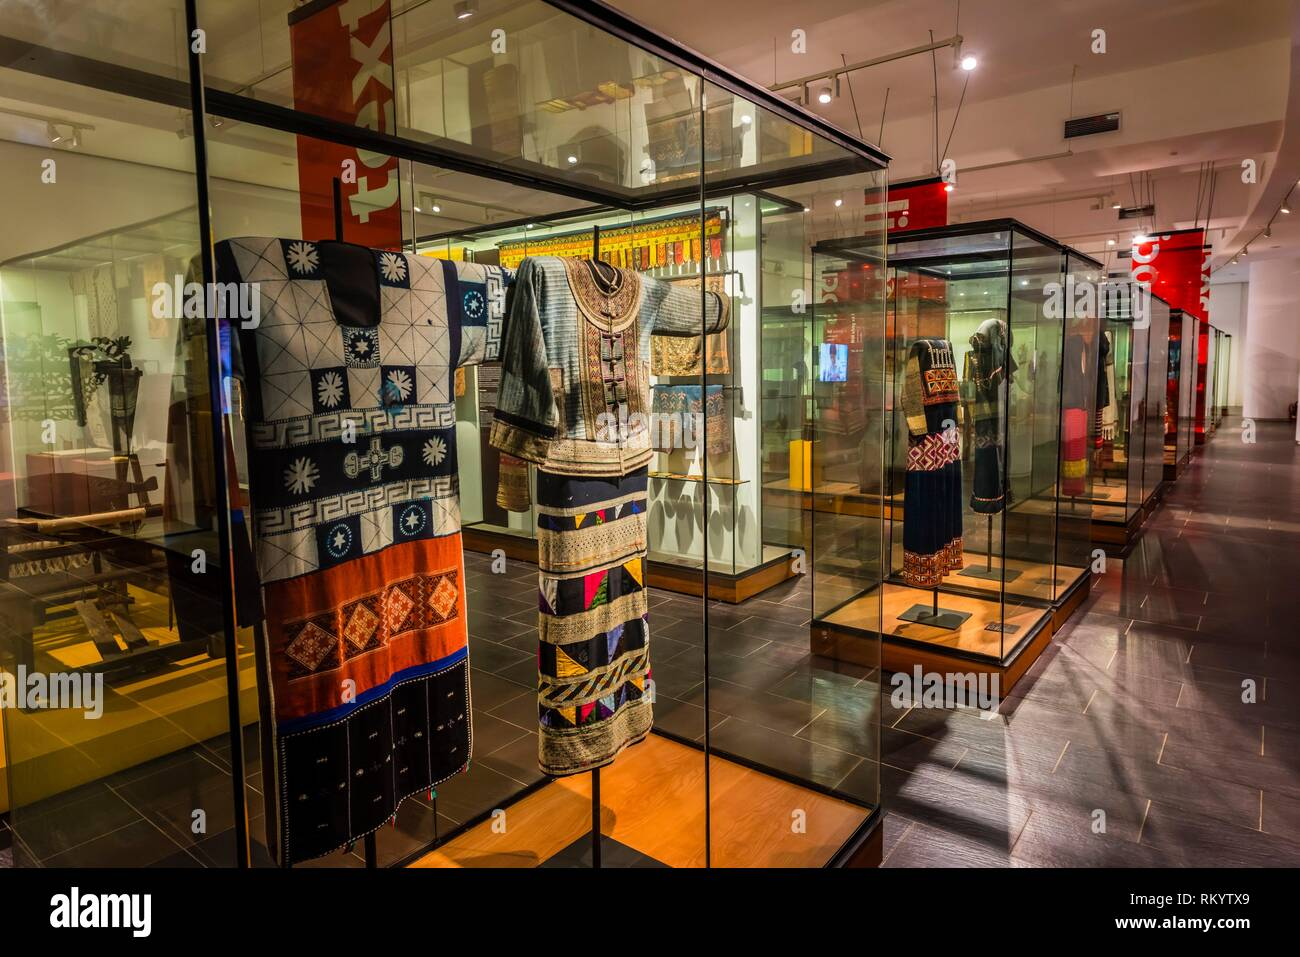 The exhibition building dedicated to Southeast Asian culture, Vietnam Museum of Ethnology, Hanoi, northern Vietnam. - Stock Image